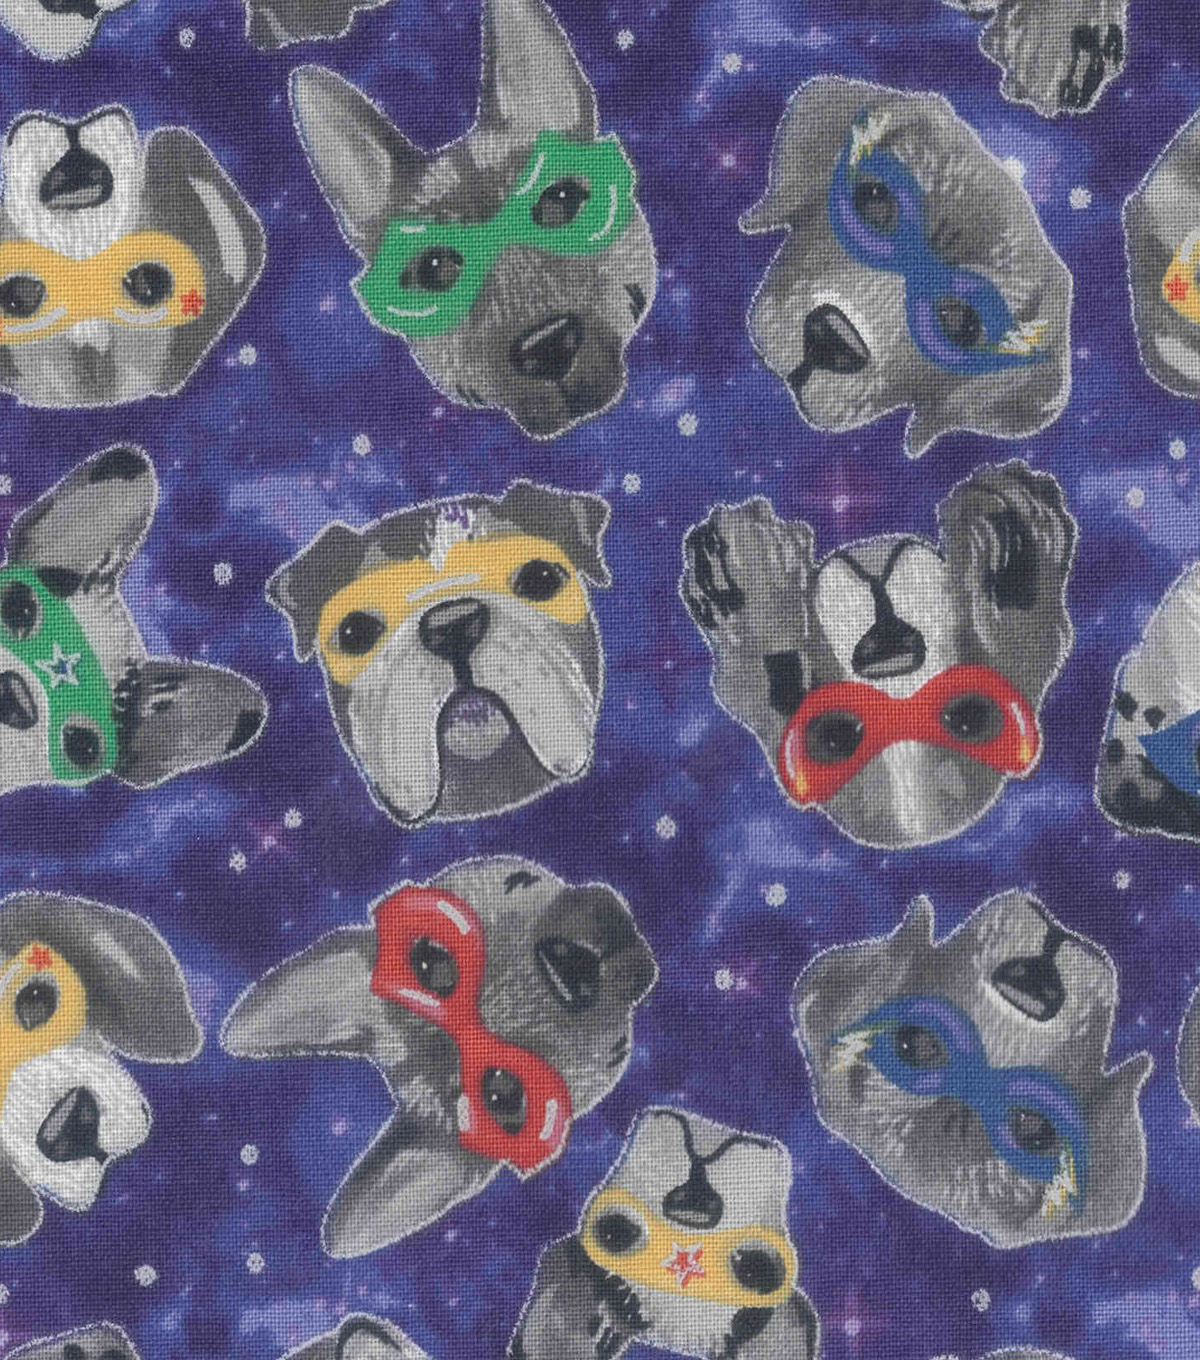 Novelty Cotton Fabric-Superhero Space Dogs